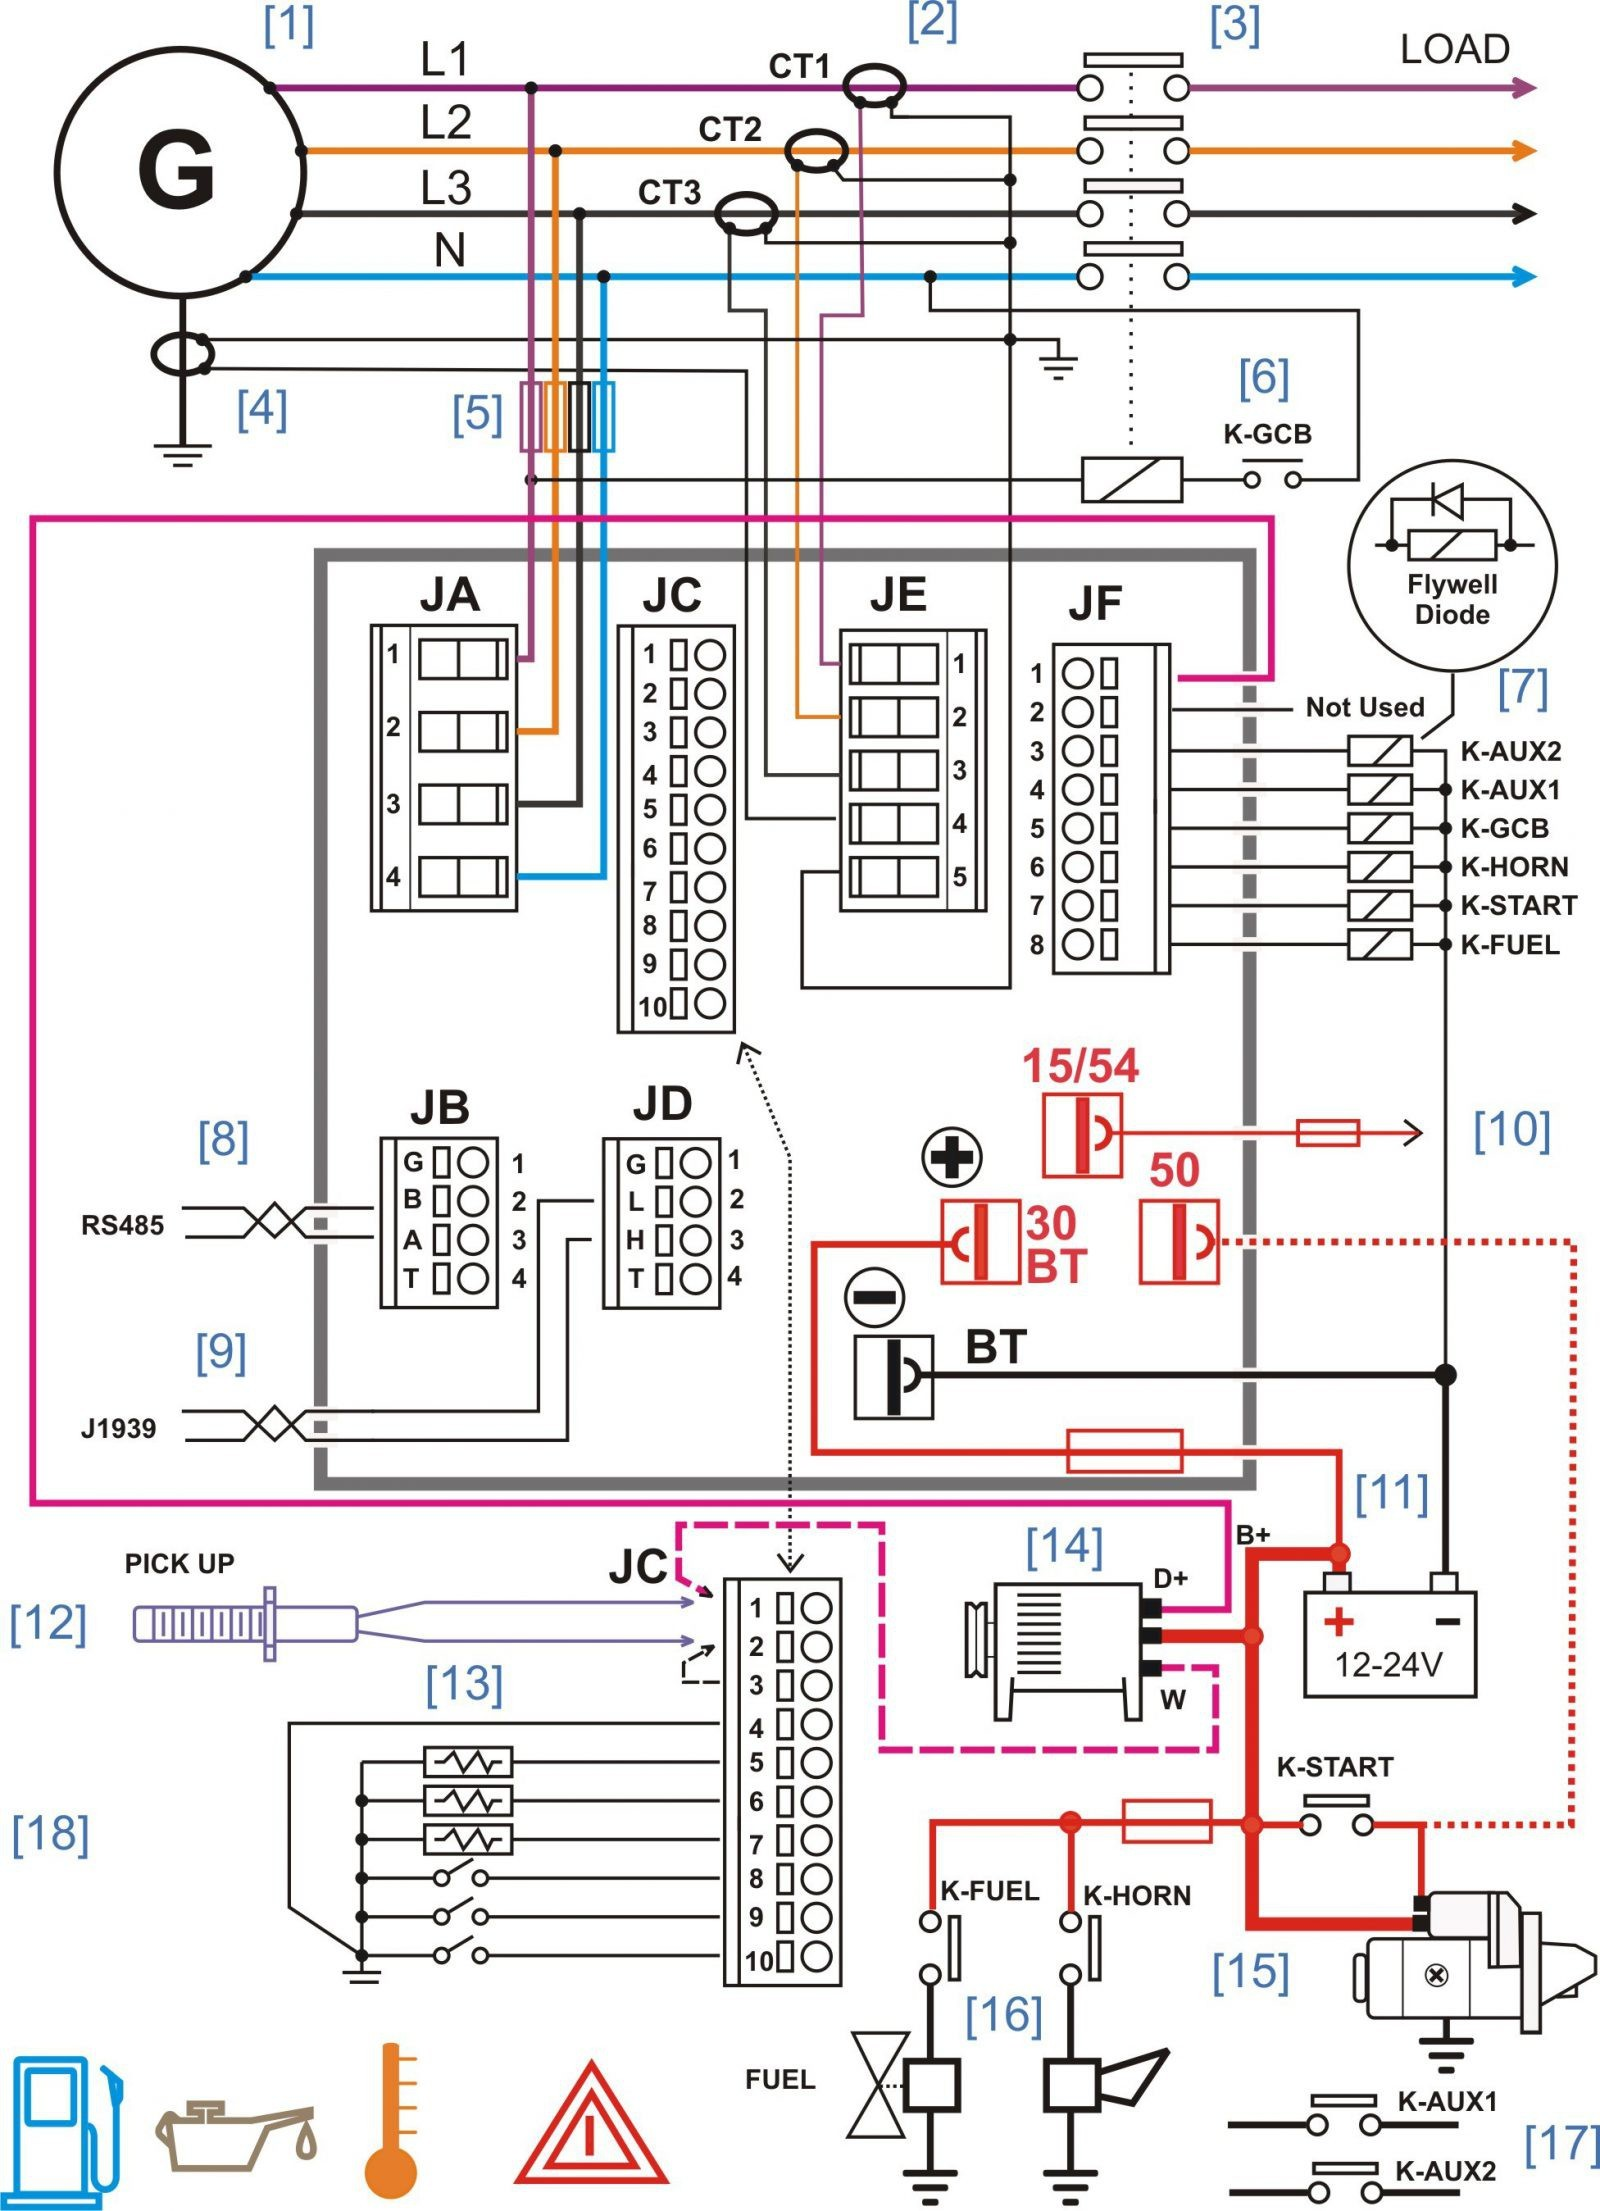 Car Stereo Installation Wiring Diagram Lovely Car Stereo Wiring Diagram Diagram Of Car Stereo Installation Wiring Diagram